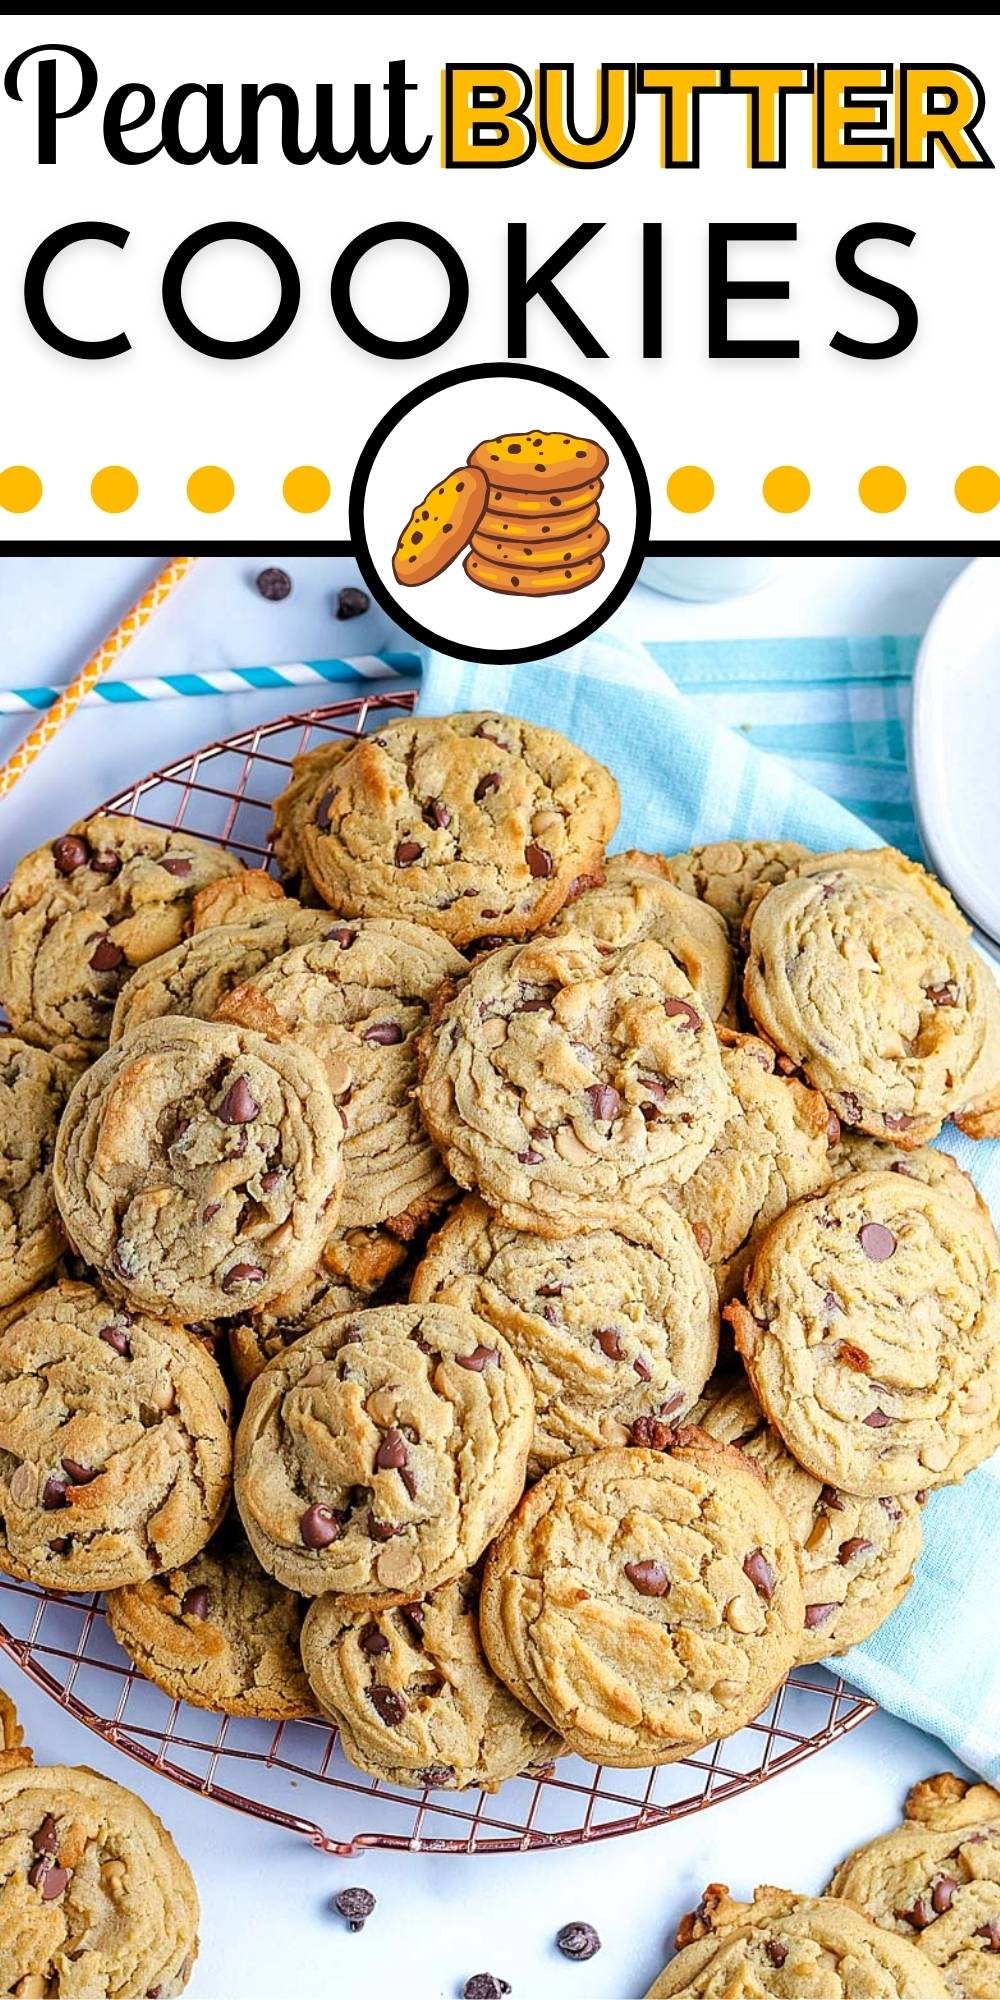 These are the Best Peanut Butter Chocolate Chip Cookies! They're thick, chewy, and loaded with peanut butter flavor and milk chocolate chips!  via @foodfolksandfun